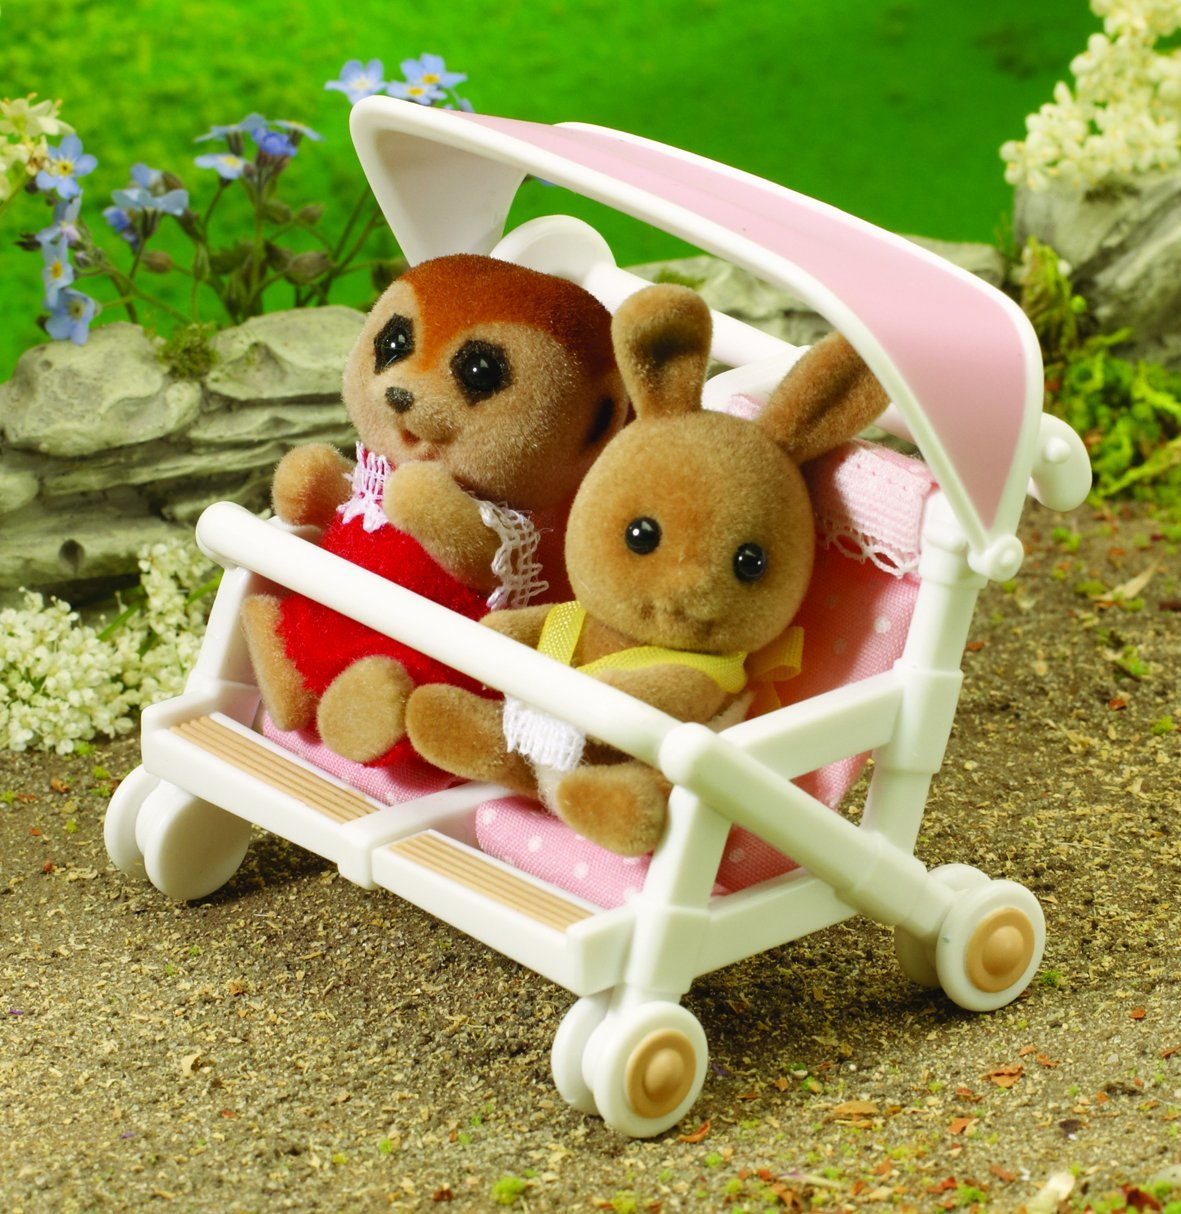 Critter Chair Sylvanian Families Double Pushchair Ebay